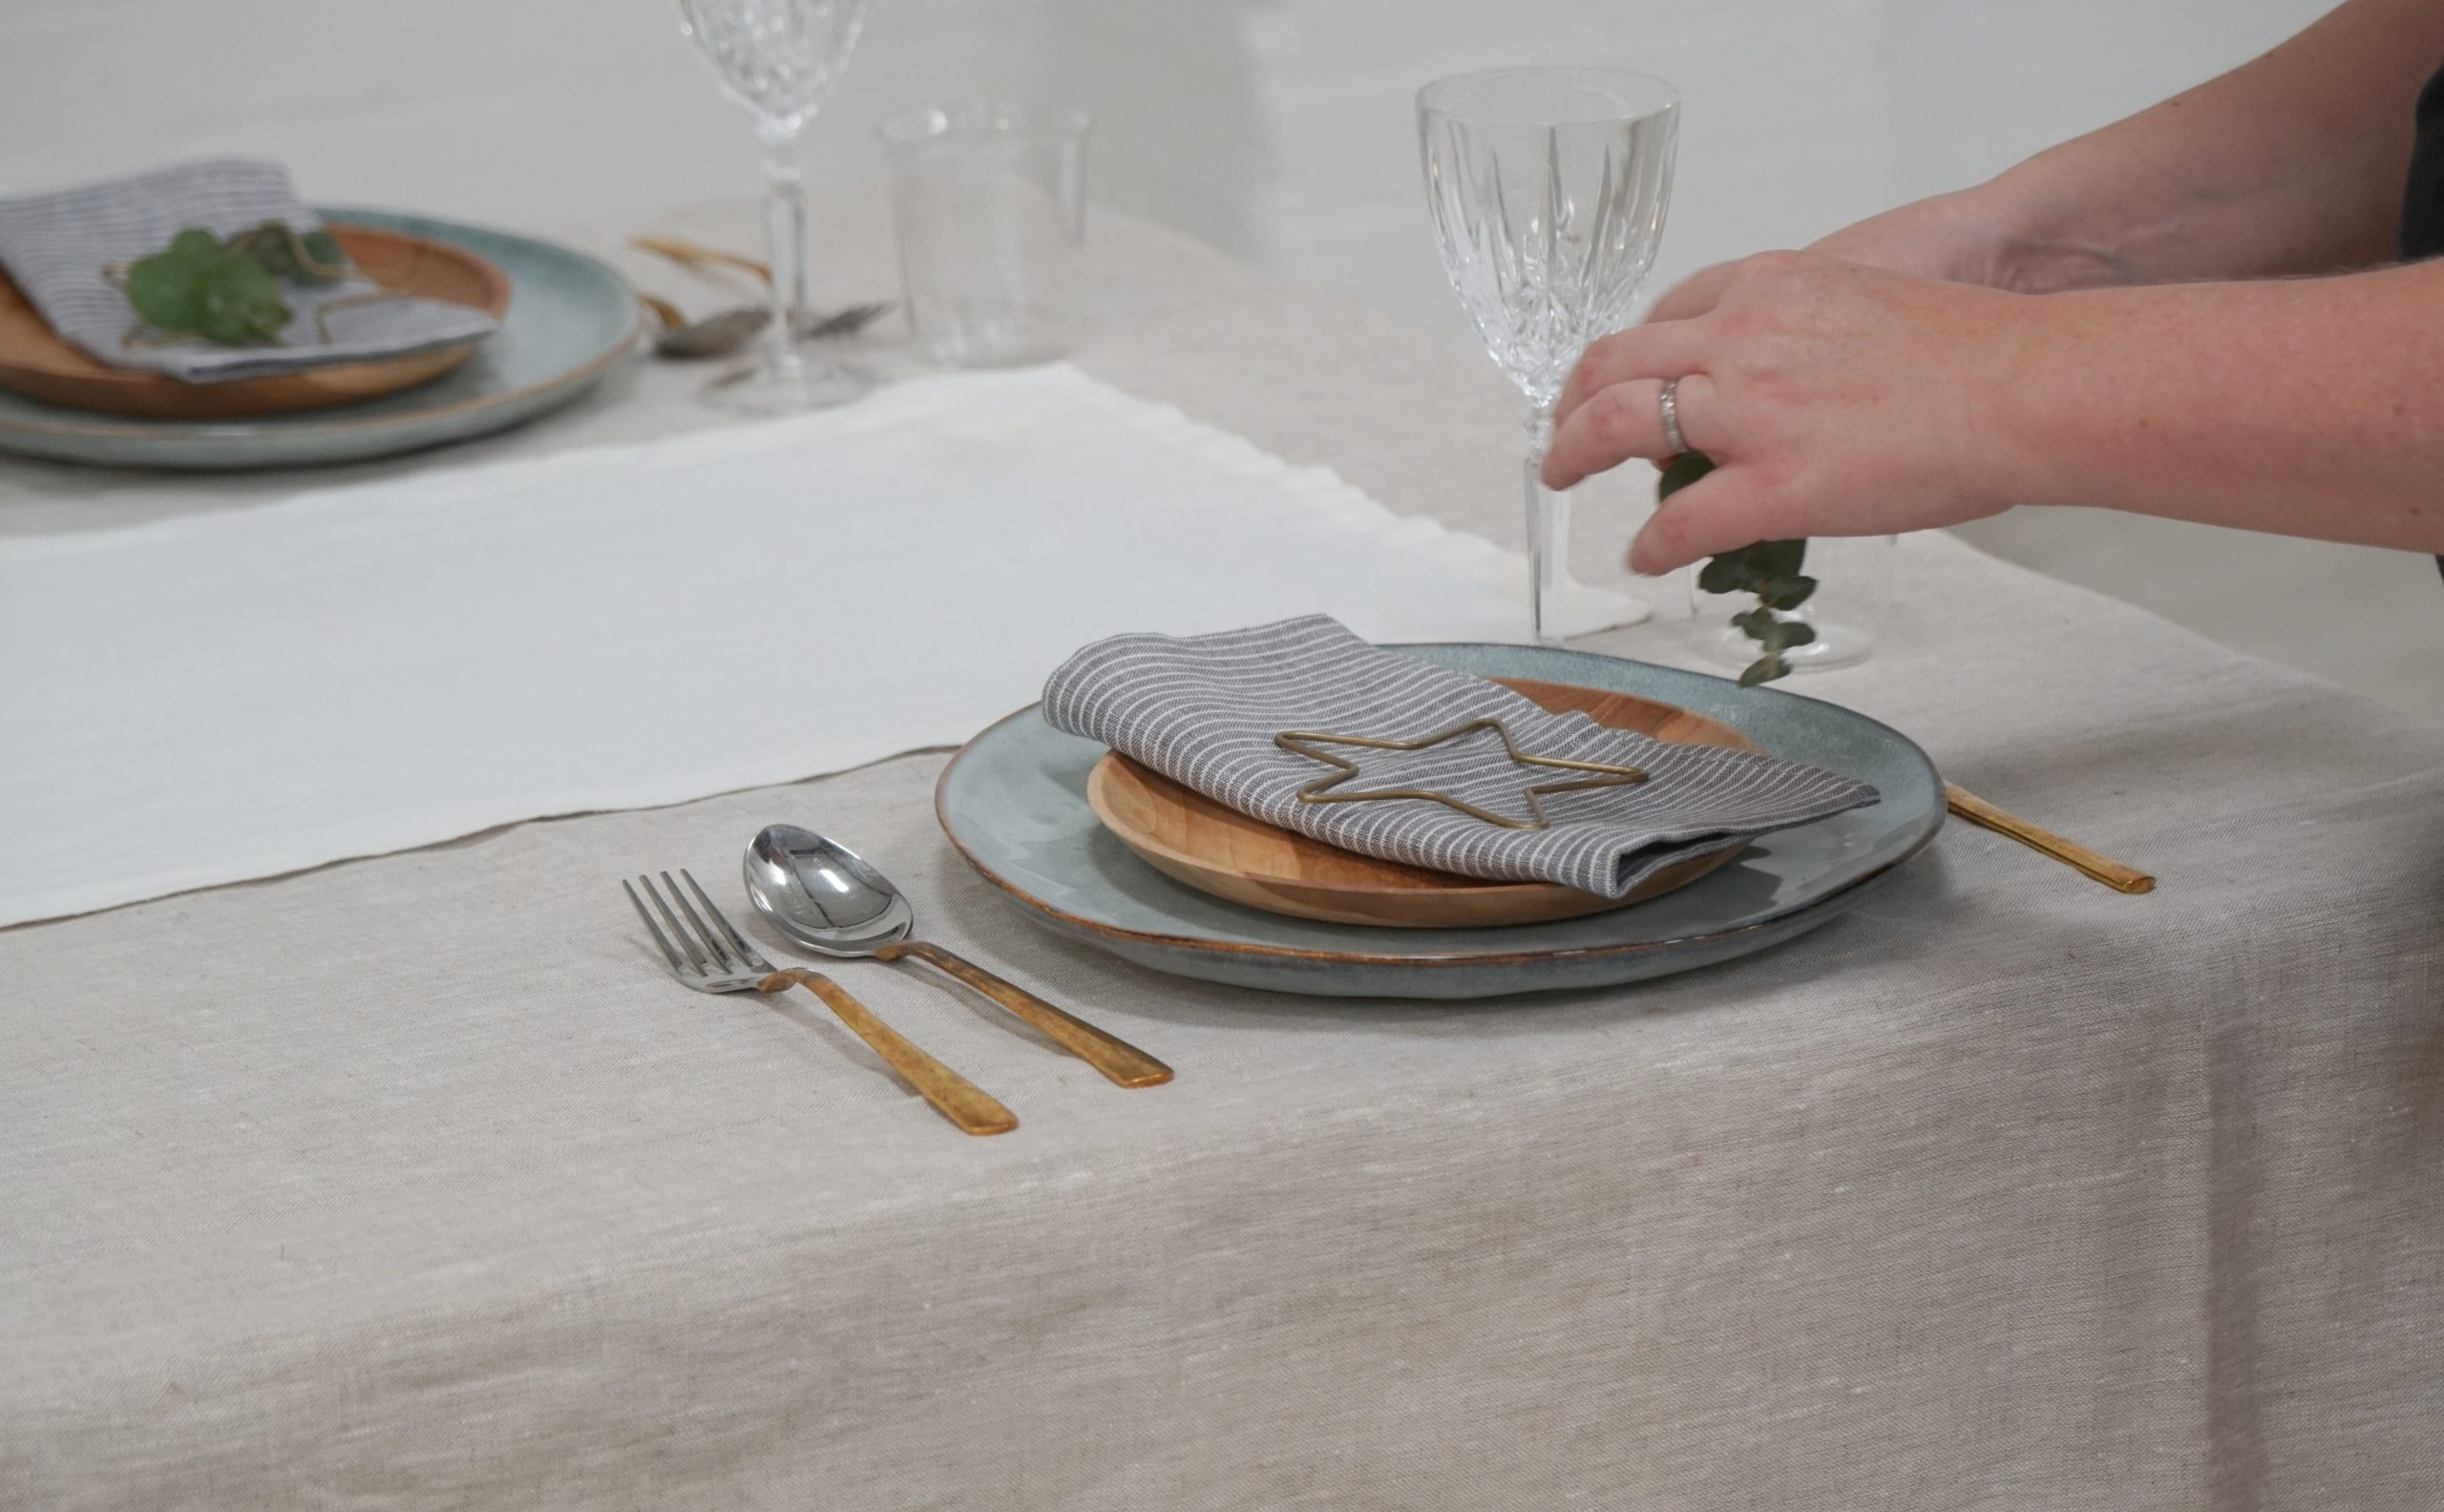 stylist setting up plates and napkins for table setting